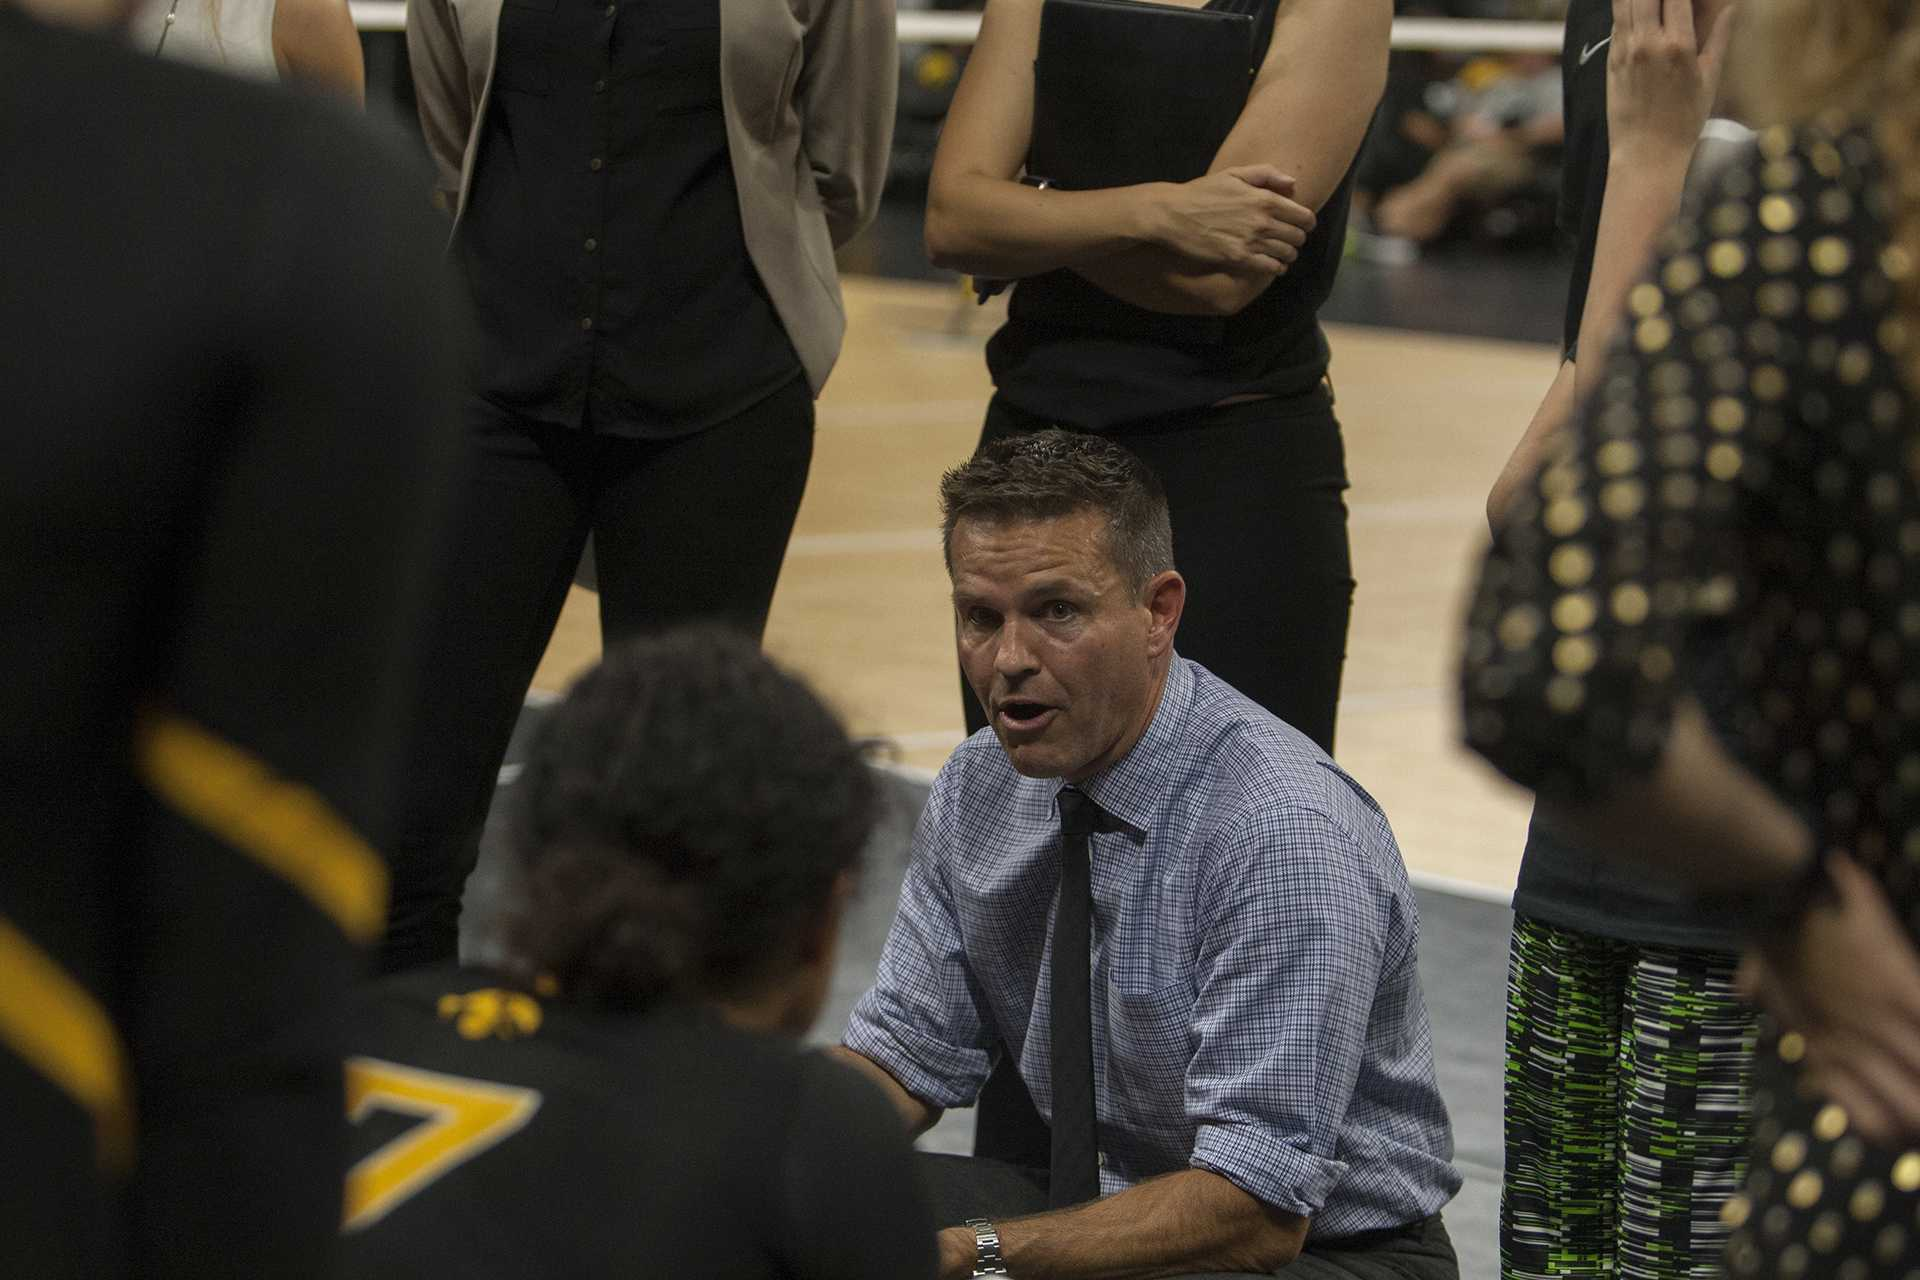 Iowa coach Bond Shymansky rallies his team during the match between Iowa and Iowa State inside Carver-Hawkeye Arena on Friday, September 8, 2017. The Hawkeyes fell to the Cyclones 3-1.